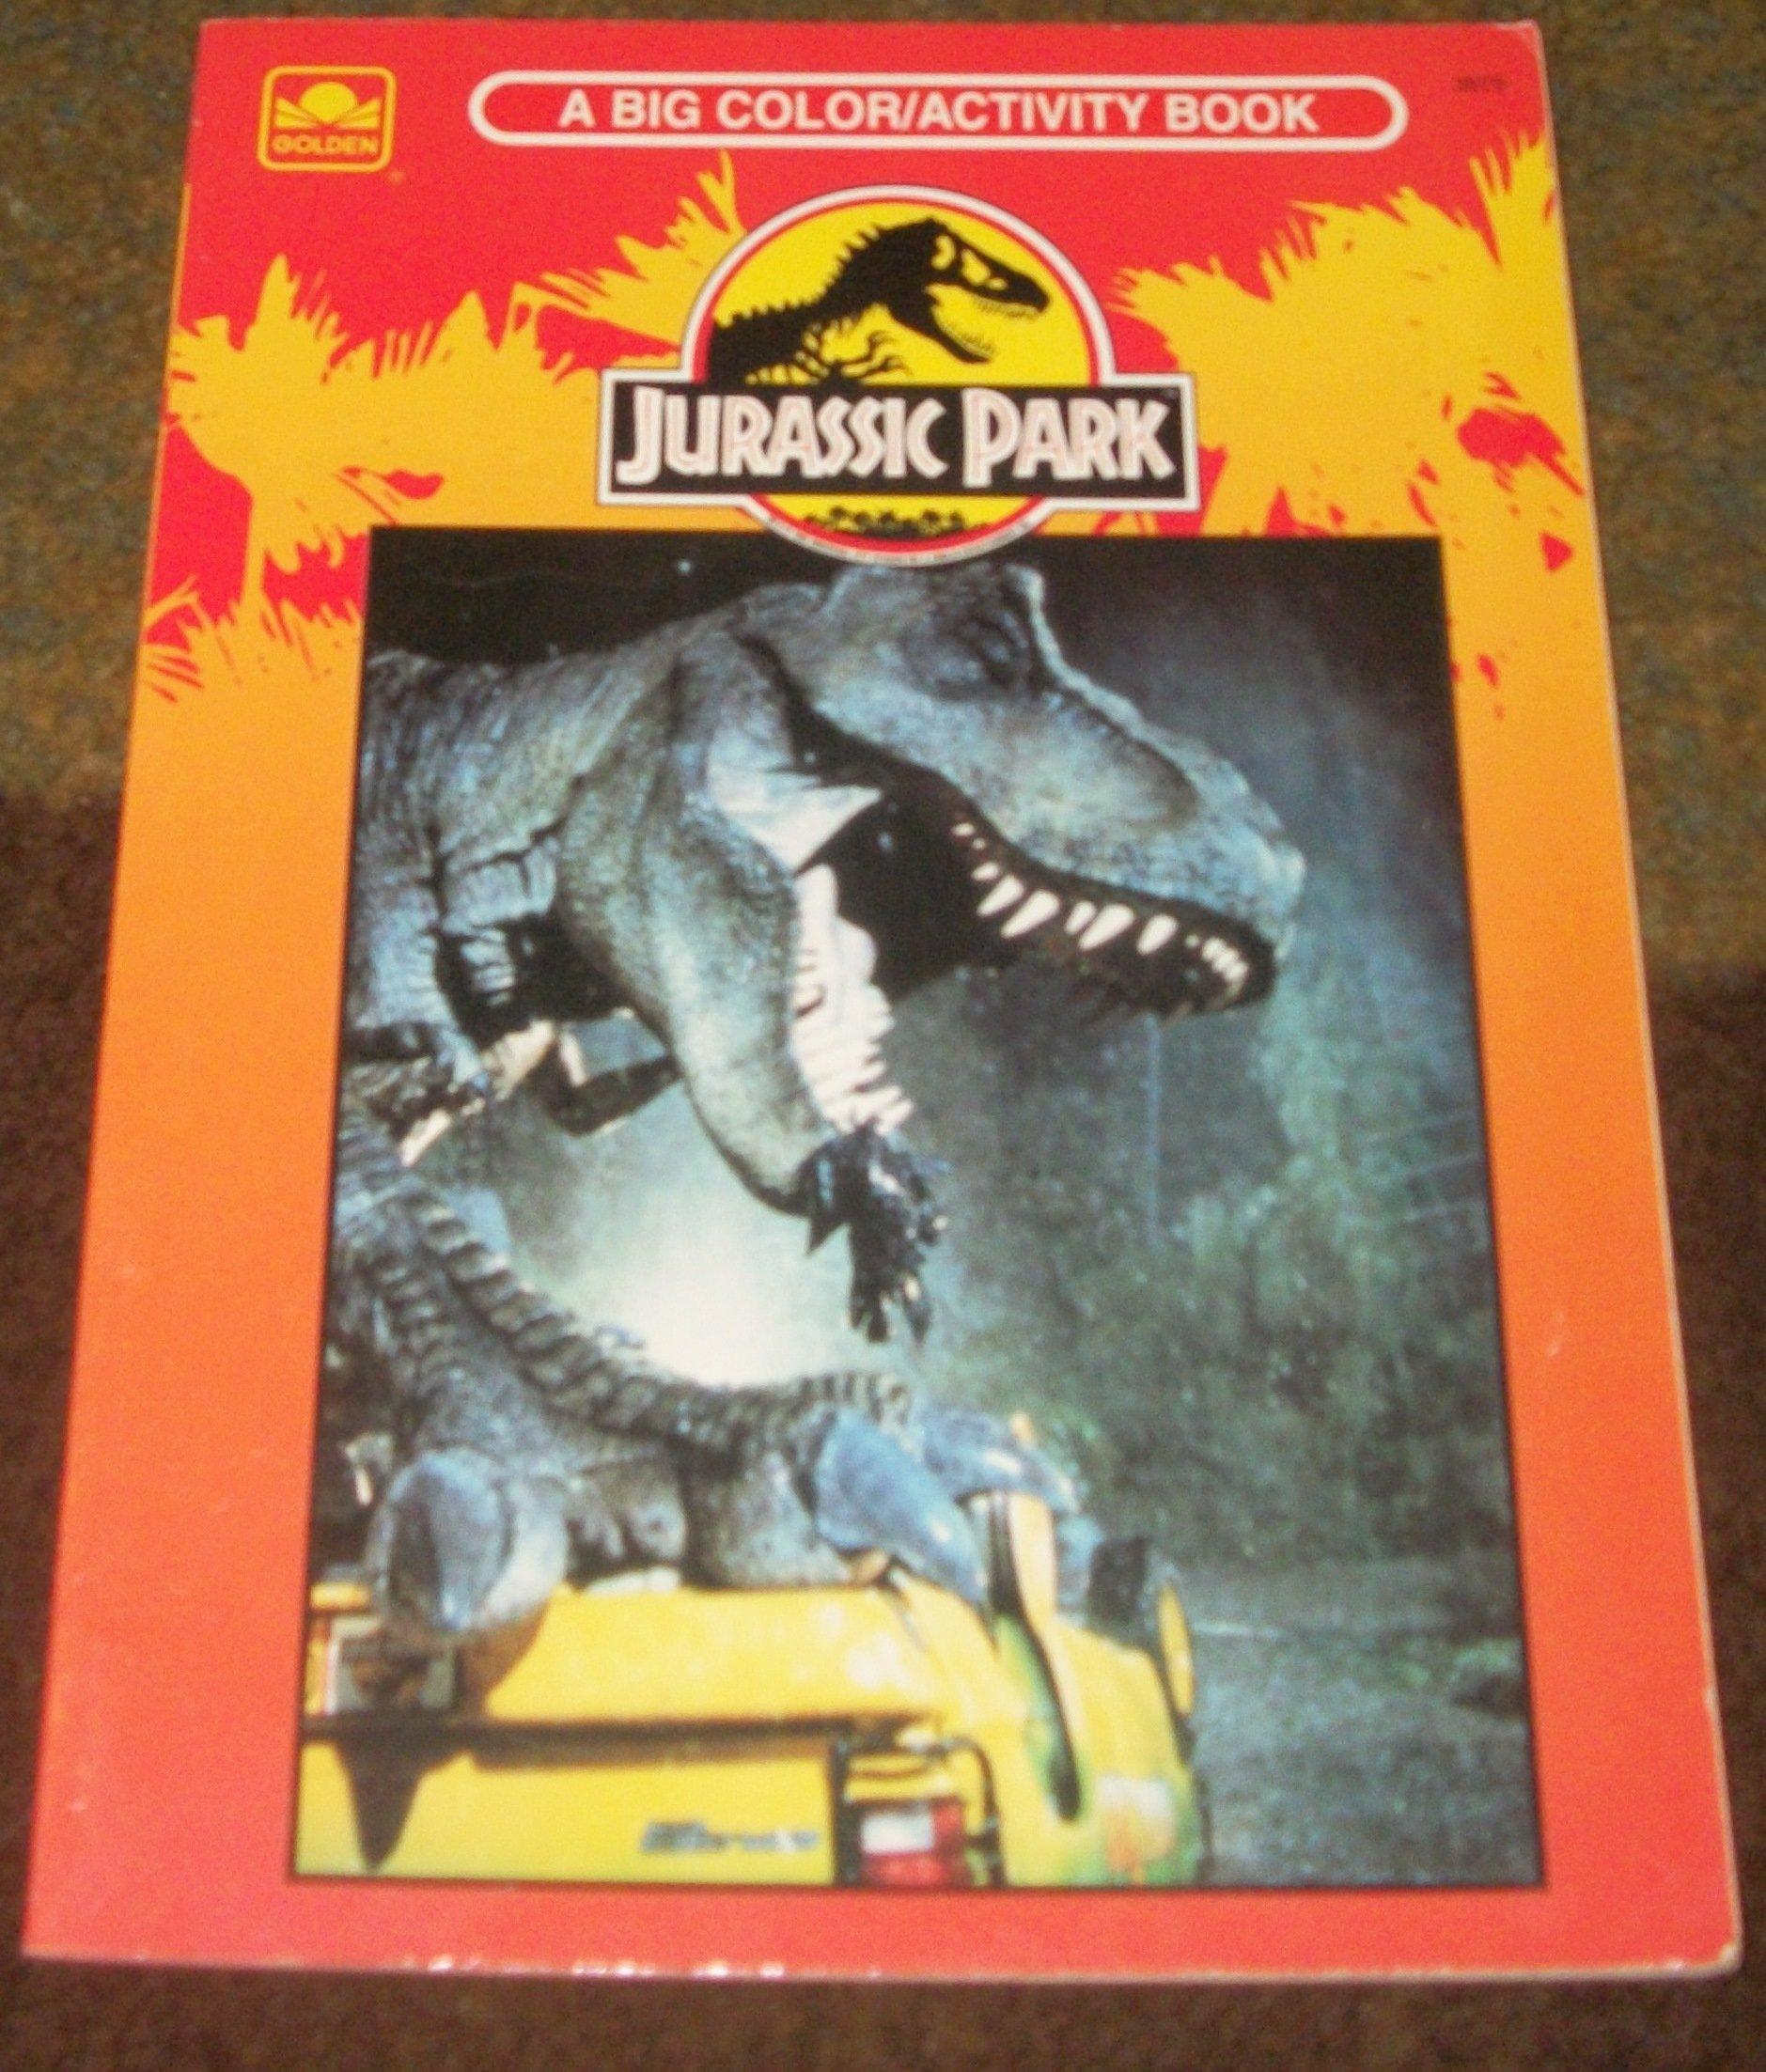 Colouring in jurassic park - Jurassic Park A Big Color Activity Book Jurassic Park Wiki Fandom Powered By Wikia